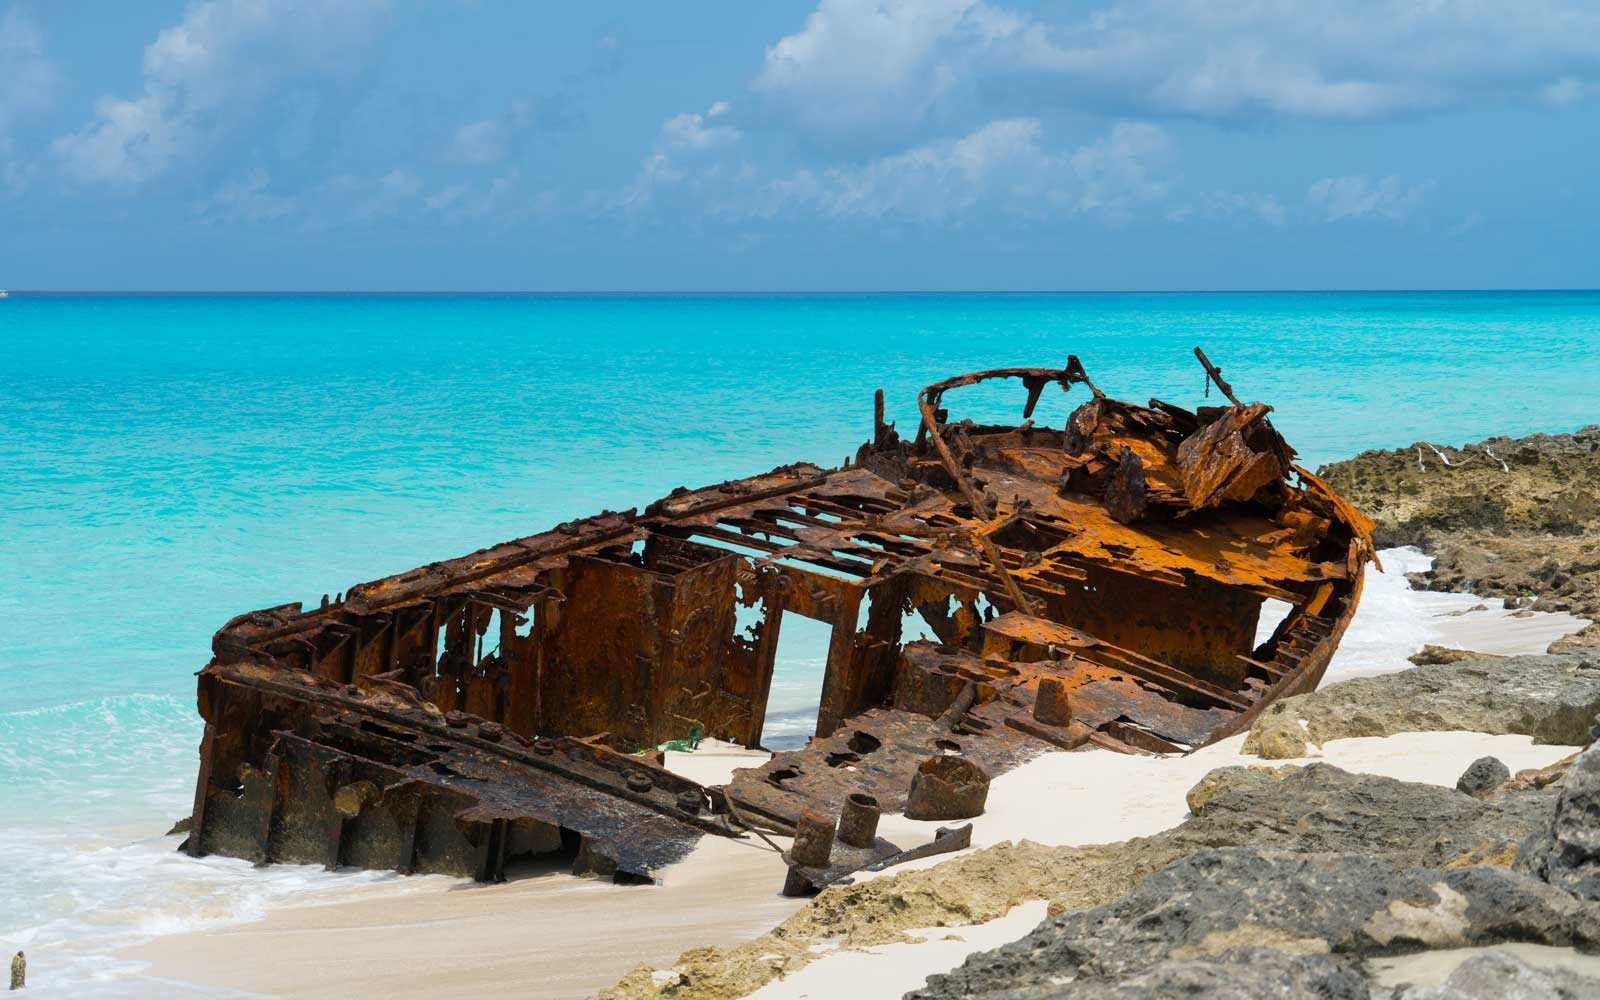 These Tiny Islands Filled With Haunting Shipwrecks and Fresh Seafood Shacks Are Crazy Close to Miami